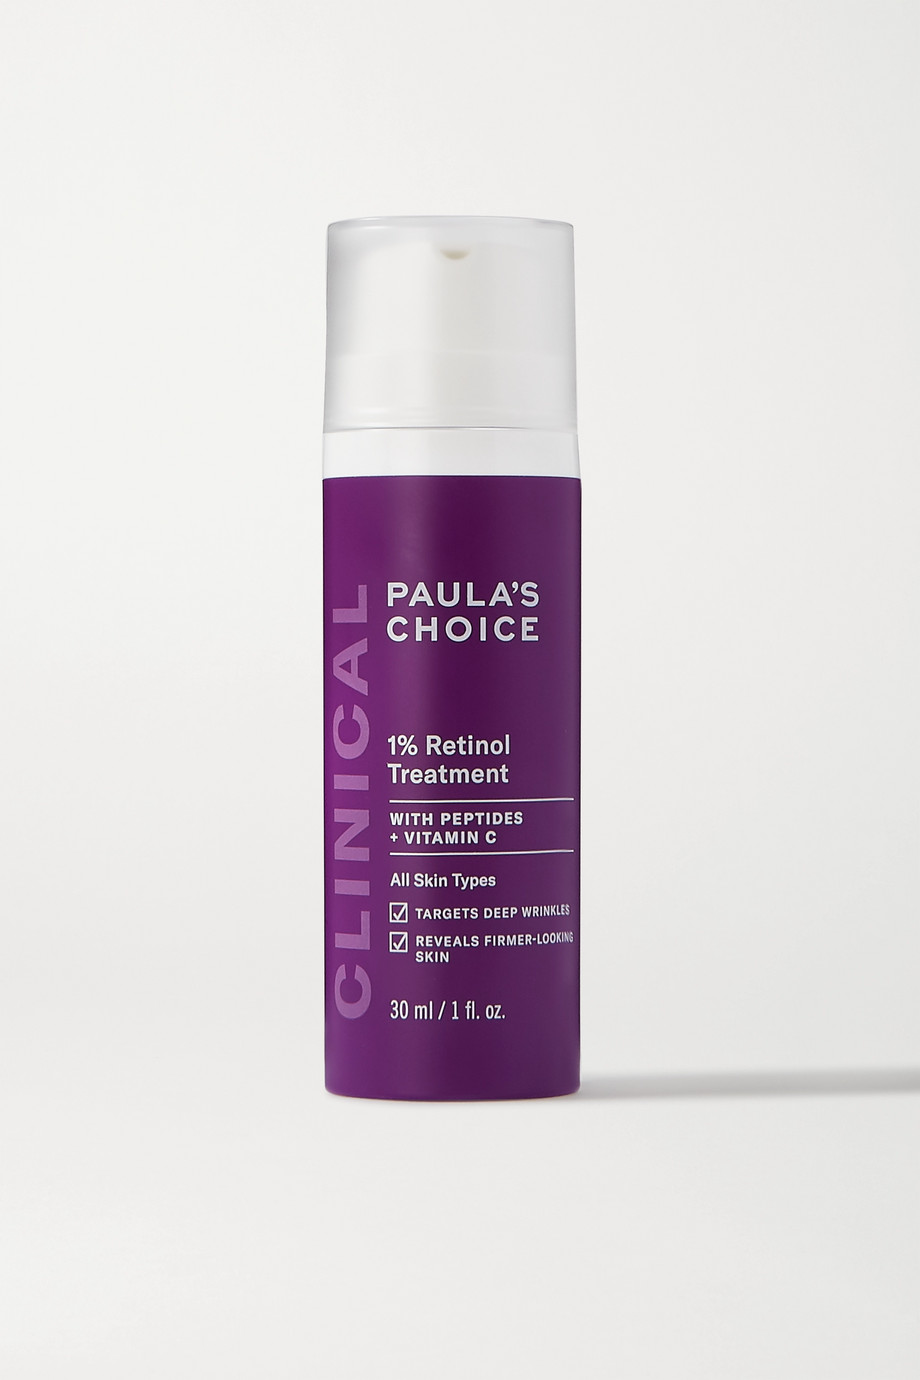 Paula's Choice Clinical 1% Retinol Treatment, 30ml